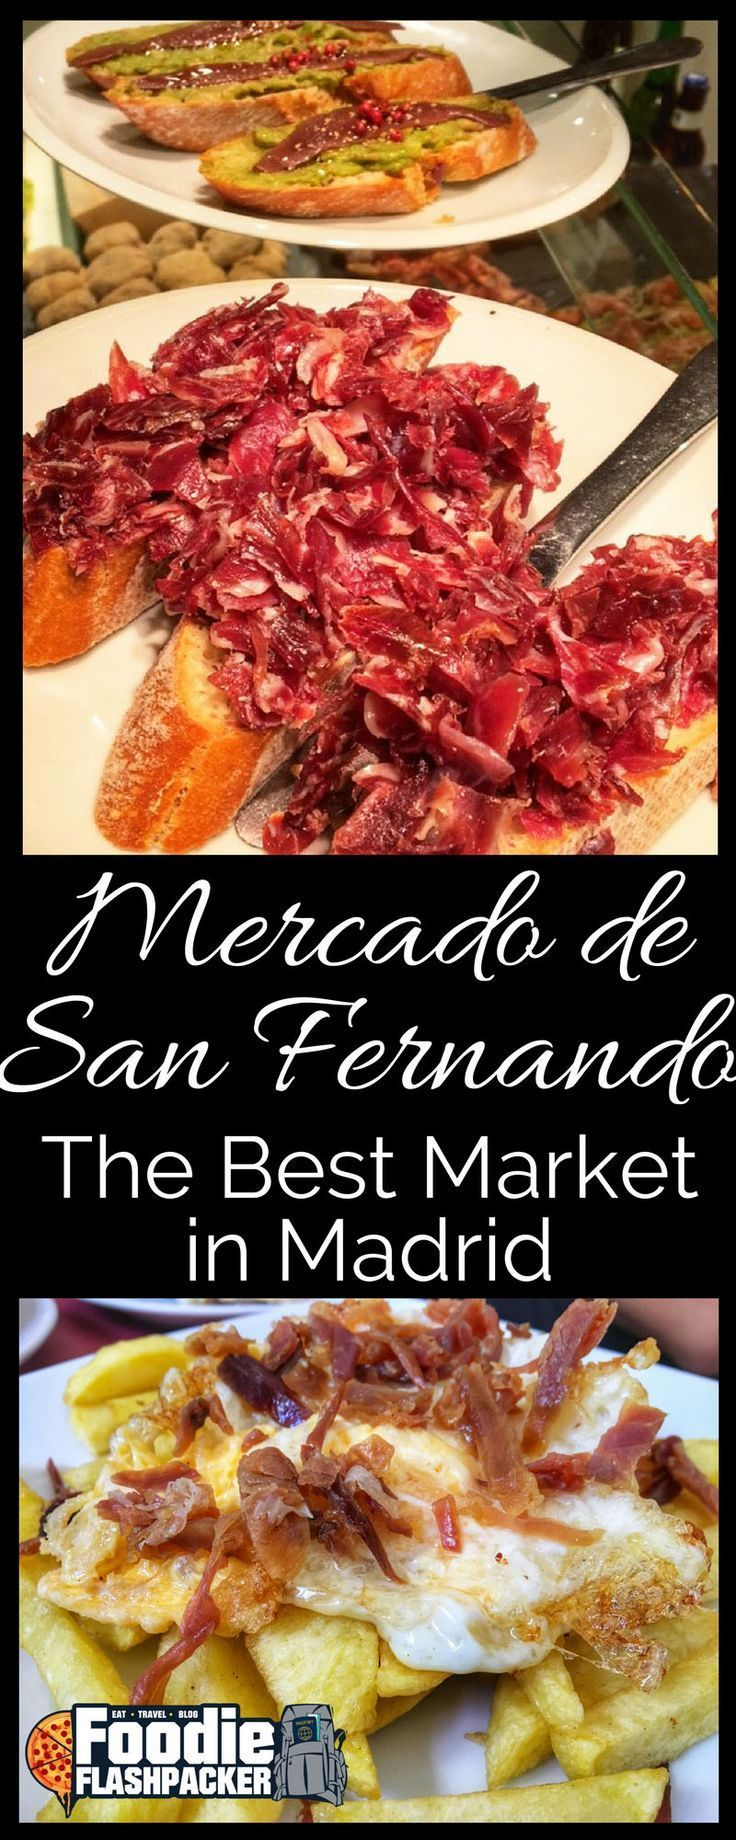 Aperitivos At Mercado De San Fernando In Madrid Foodie Flashpacker Foodie Travel Food Food